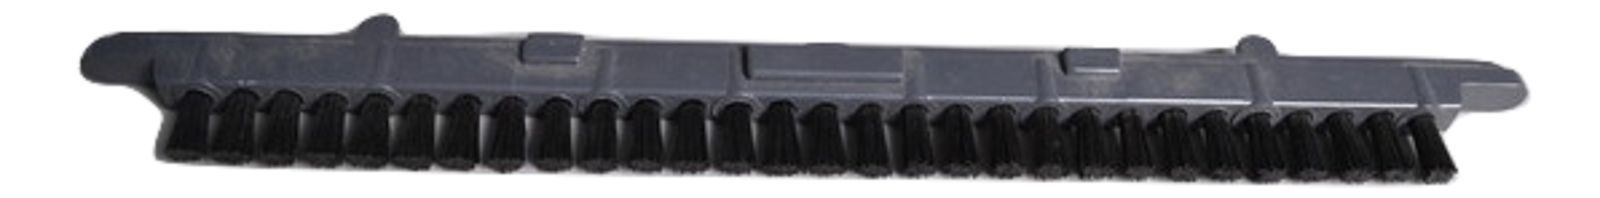 Hoover Brush Strip Late Broom Nozzle & Celebrity Part 166656